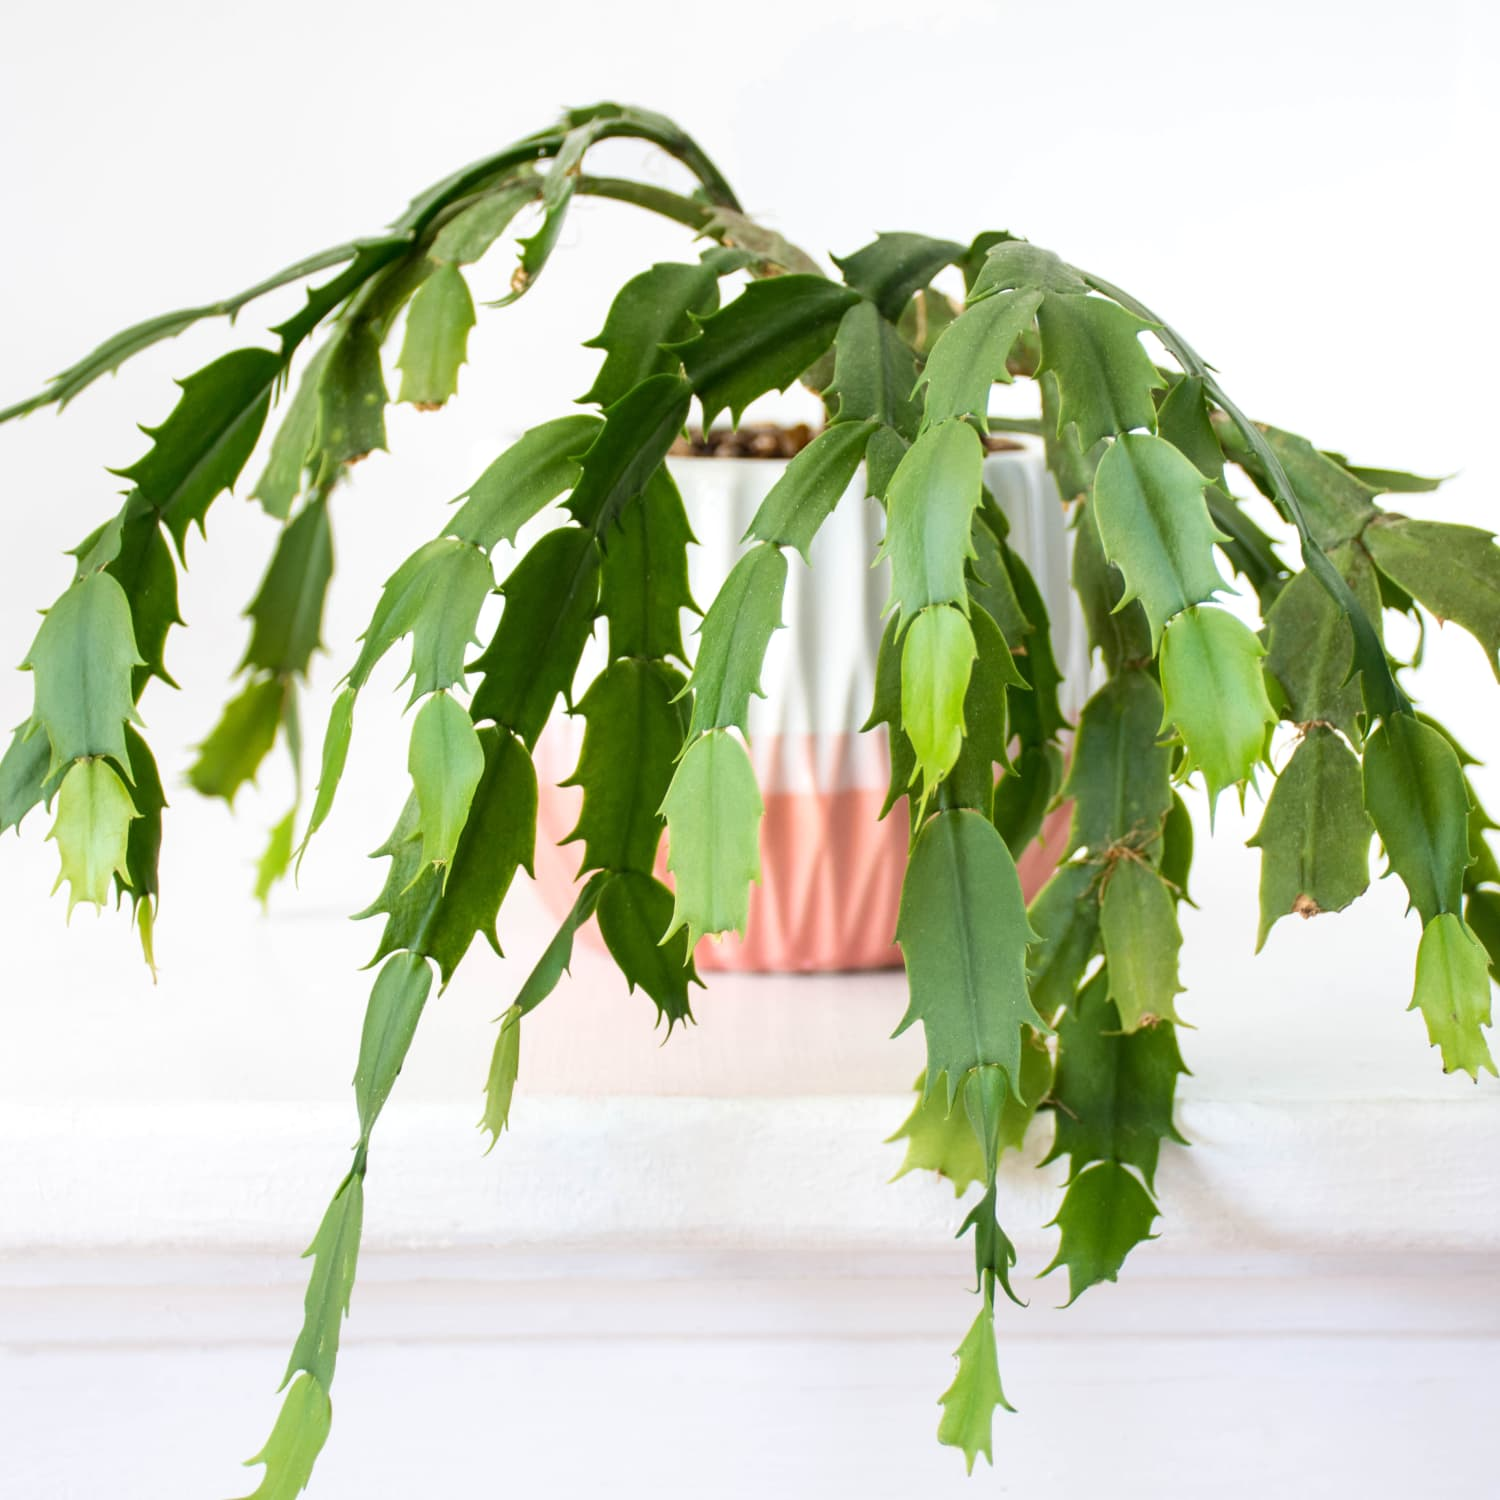 Christmas Cactus Care How To Grow Maintain Christmas Cactuses Apartment Therapy